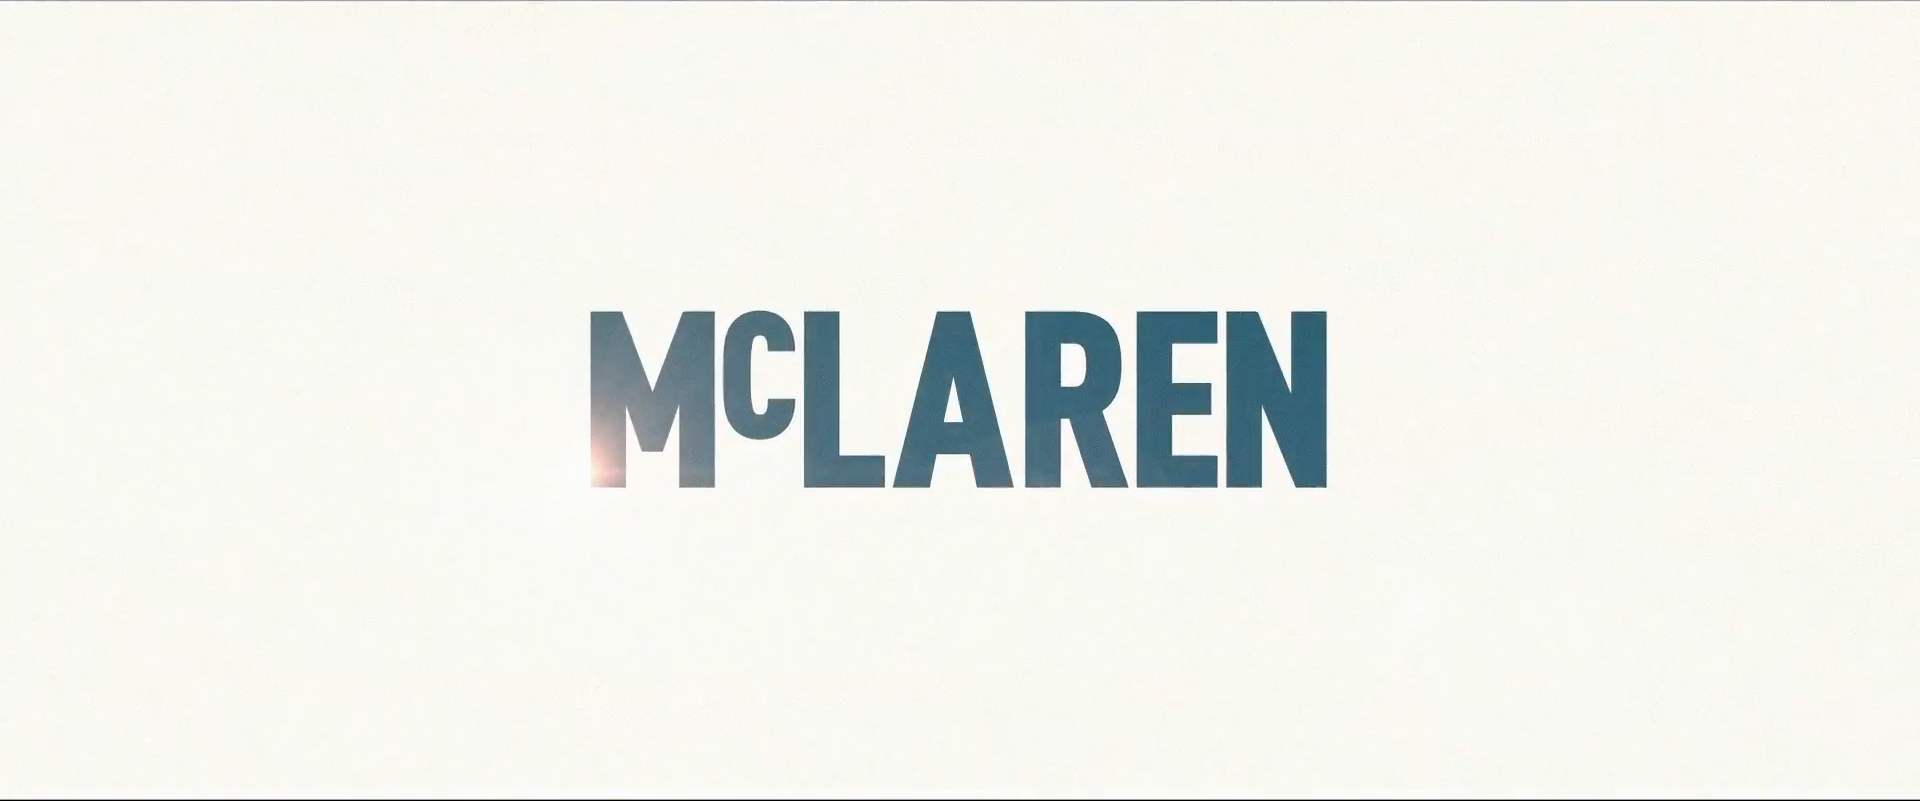 Film Commemorating Bruce McLaren To Be Released This Year